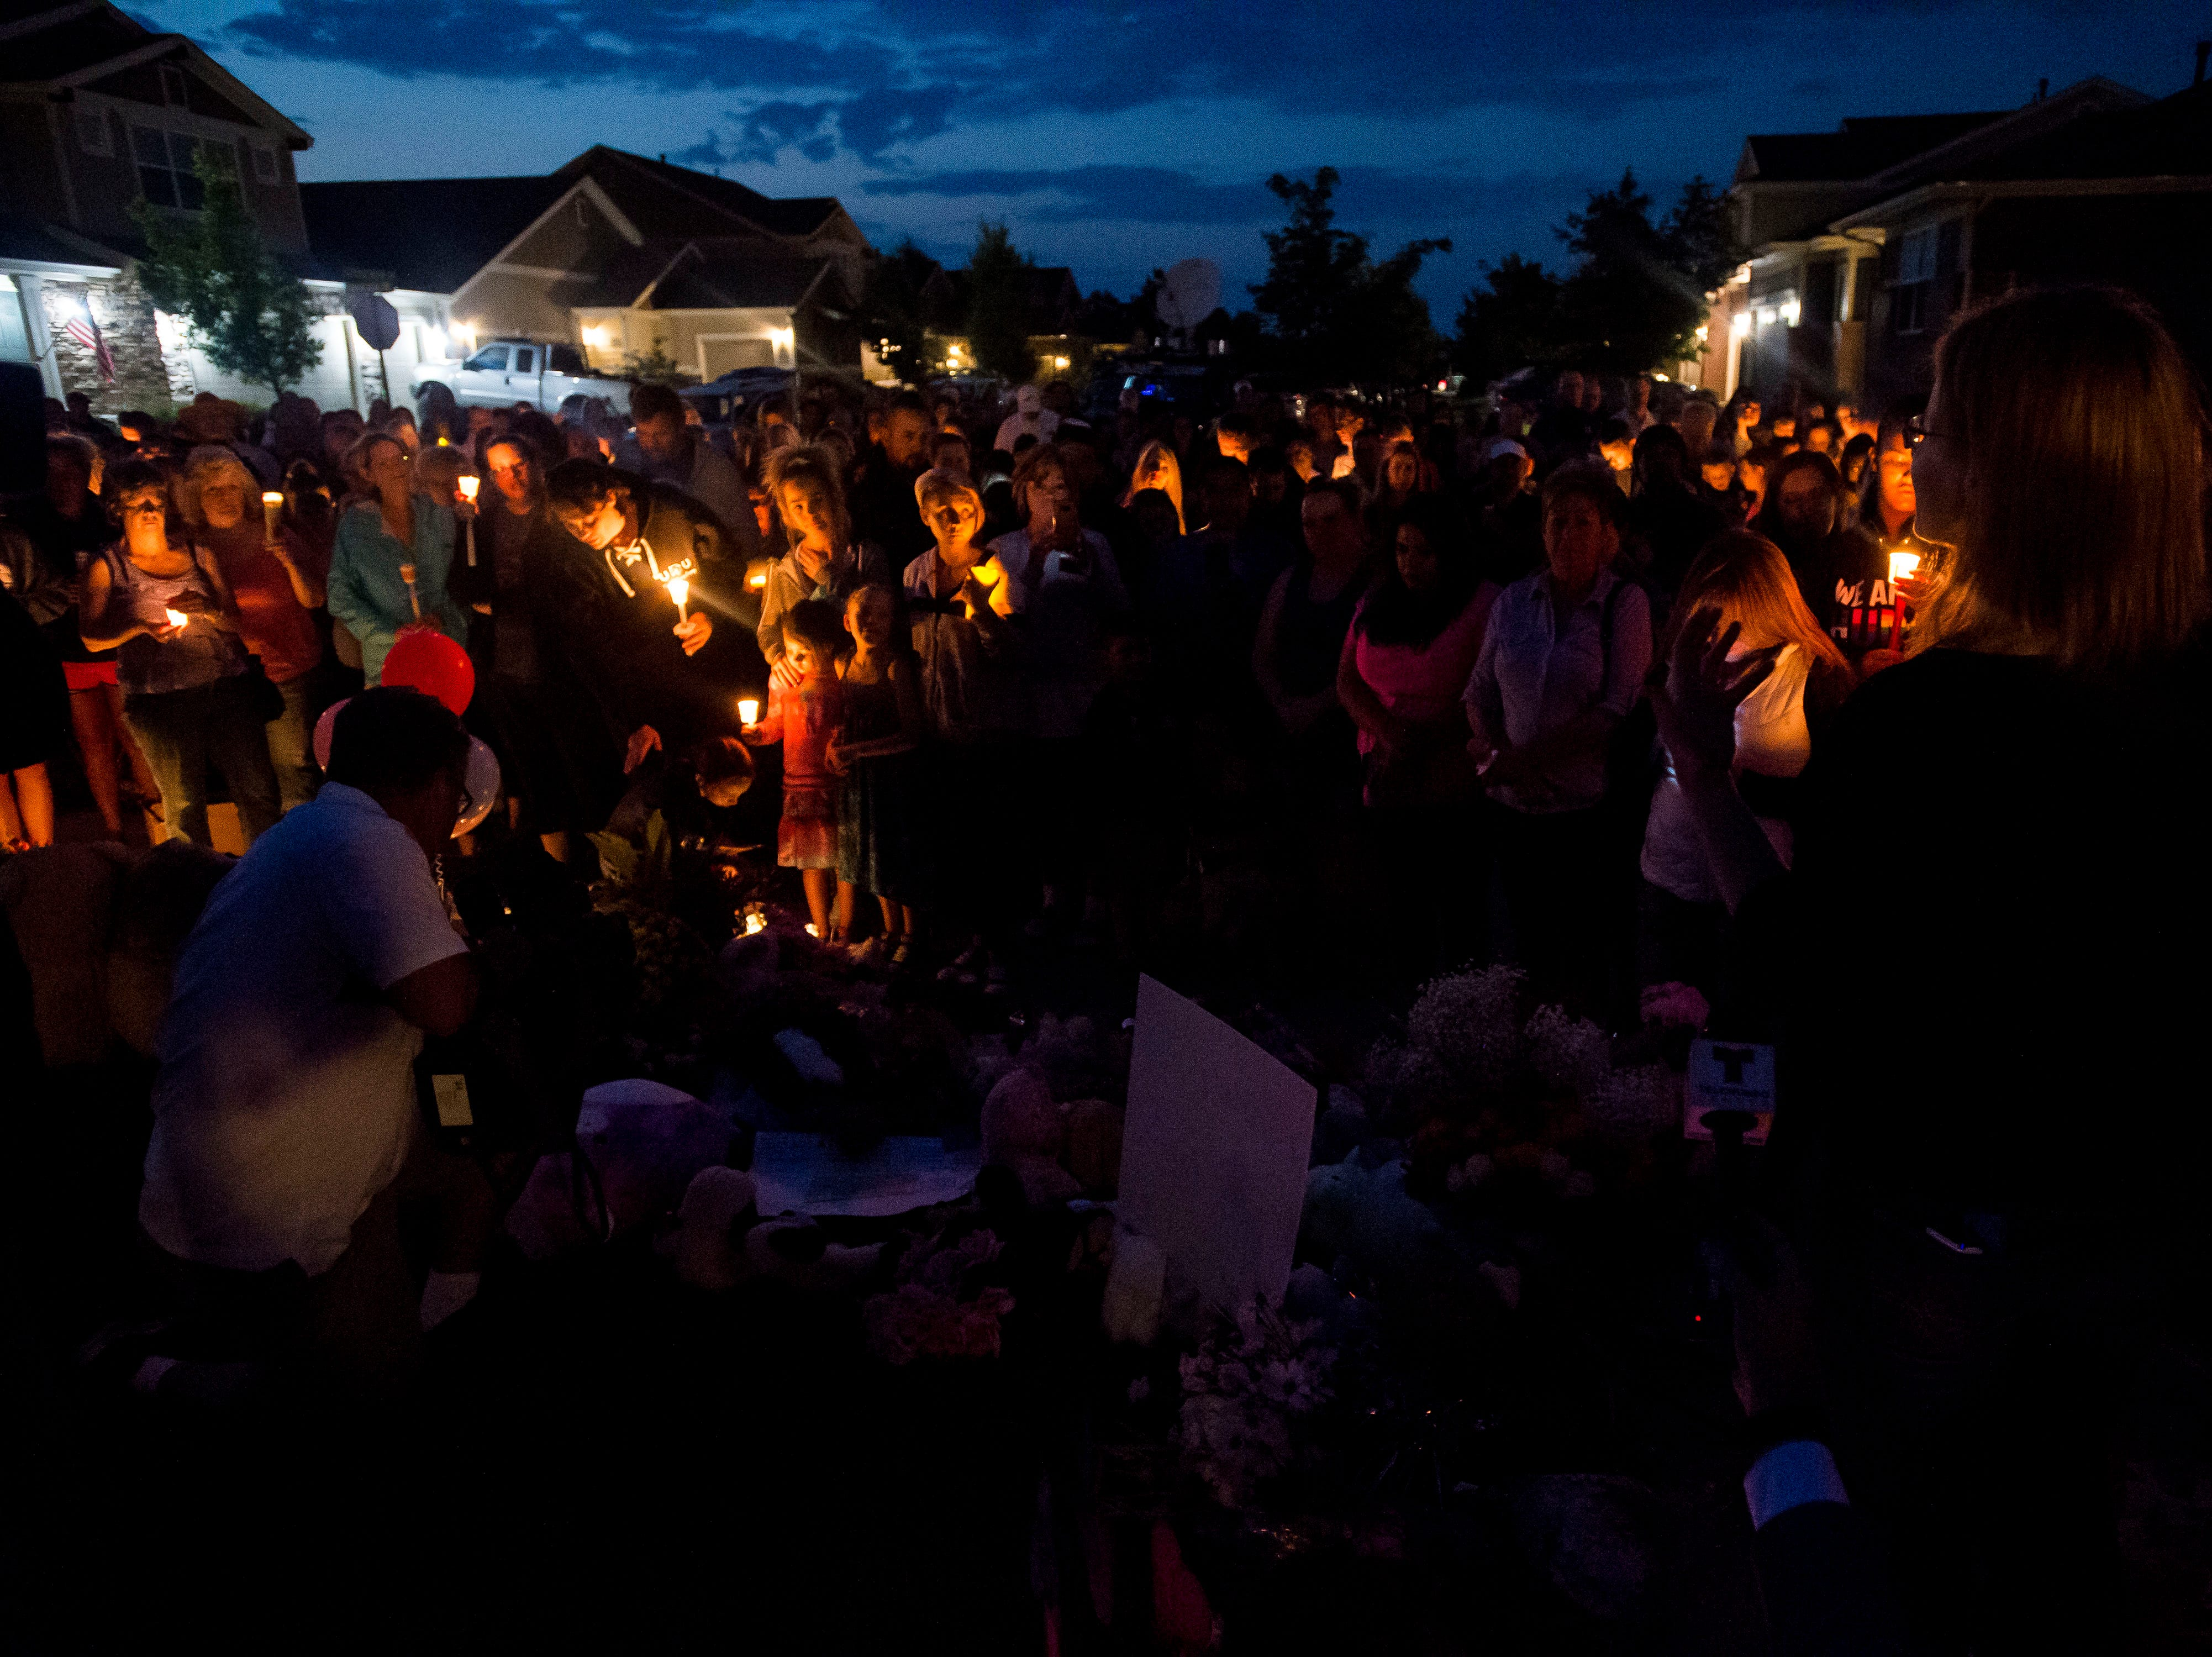 Mourners gather for a candle-lit vigil for the slain Shanann Watts and her two daughters, Bella, 4, and Celeste, 3, in front of the Watts' family home on Friday, Aug. 17, 2018, in Frederick, Colo.